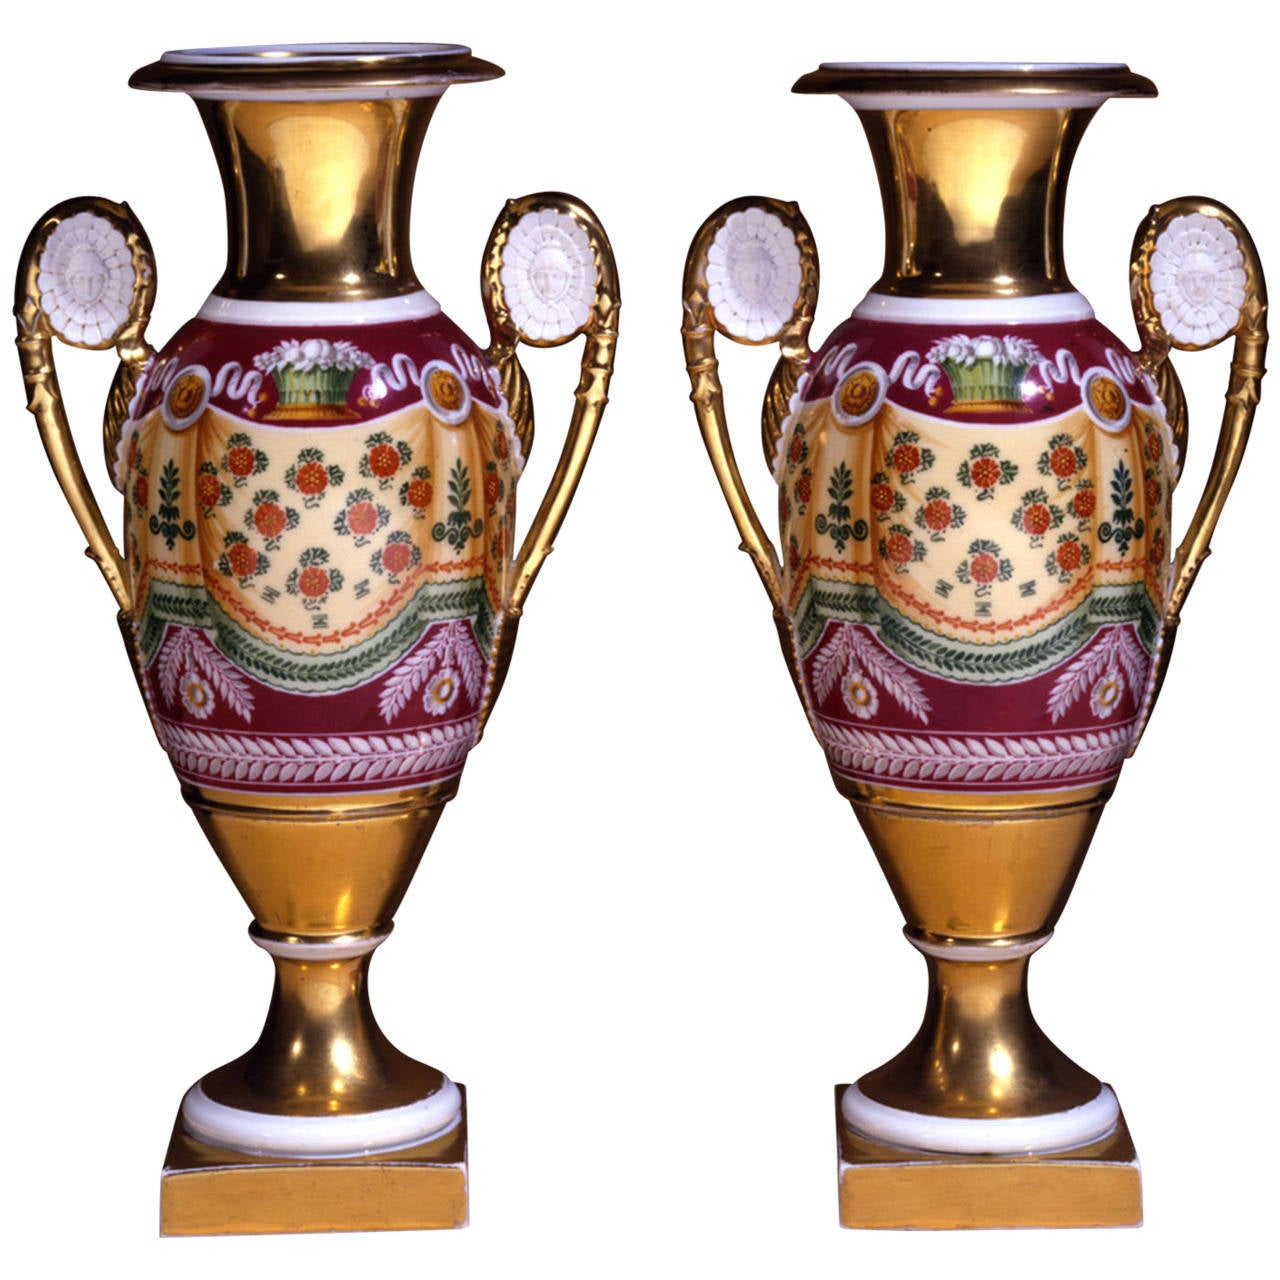 Pair of 'Old Paris' Porcelain Vases with Drapery Decoration